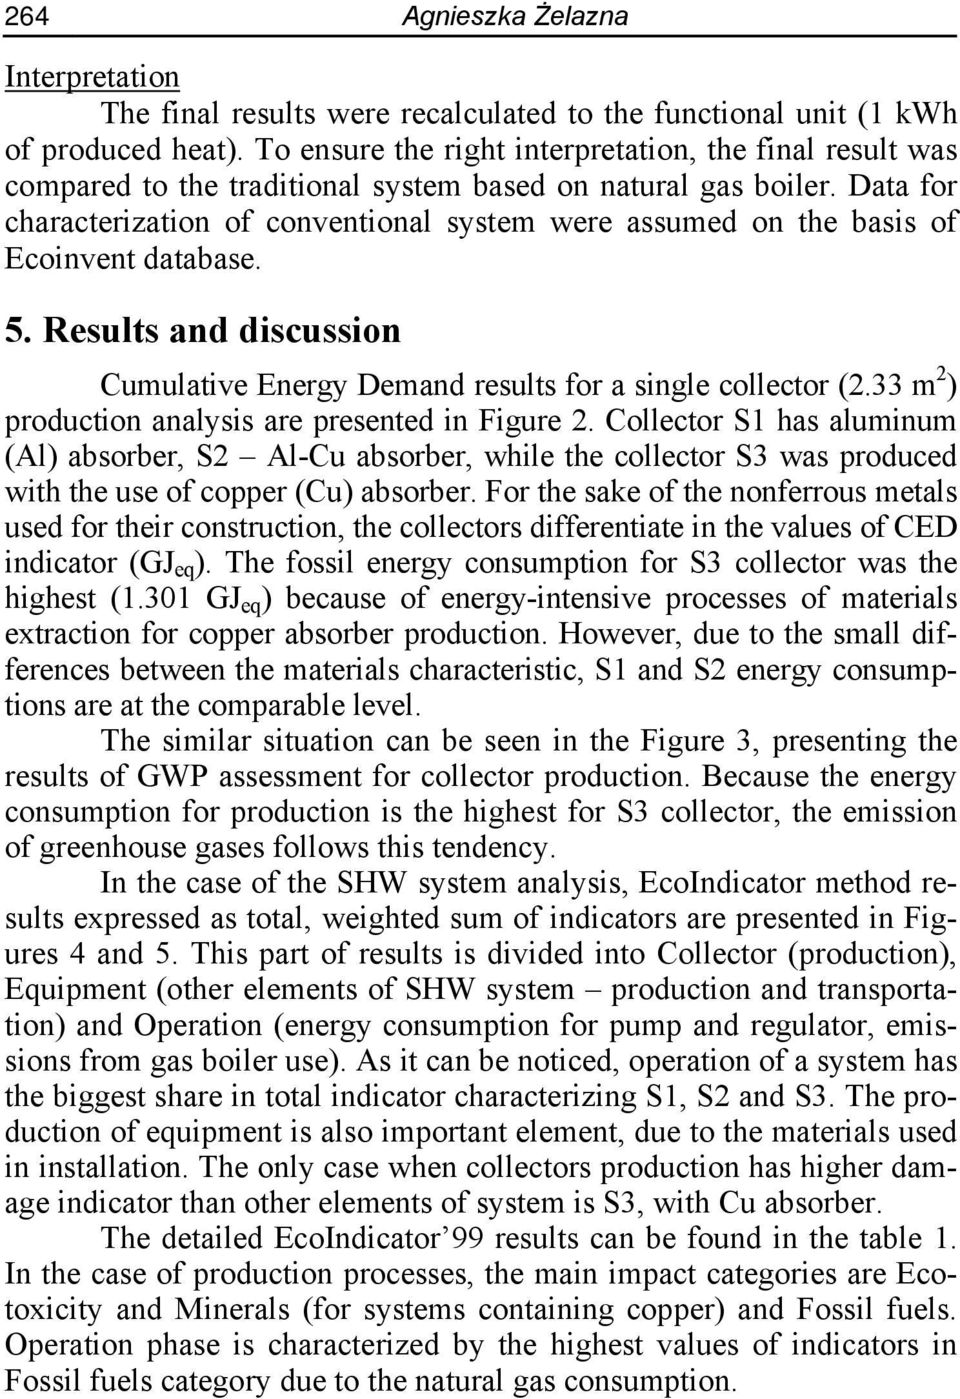 Data for characterization of conventional system were assumed on the basis of Ecoinvent database. 5. Results and discussion Cumulative Energy Demand results for a single collector (2.